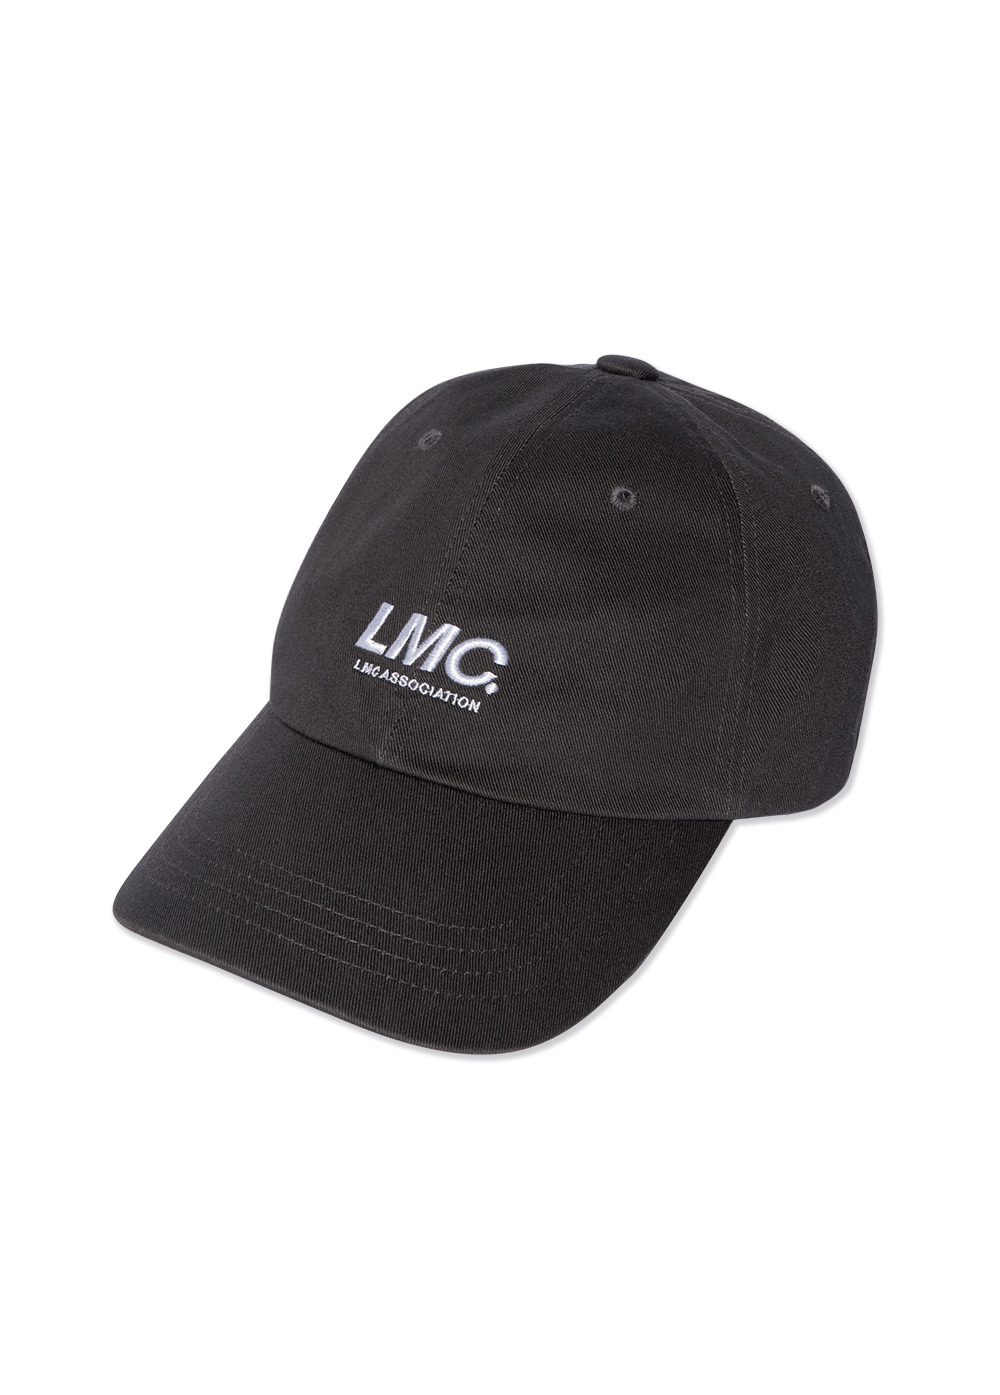 LMC ITALIC ASSOCIATION 6 PANEL CAP charcoal